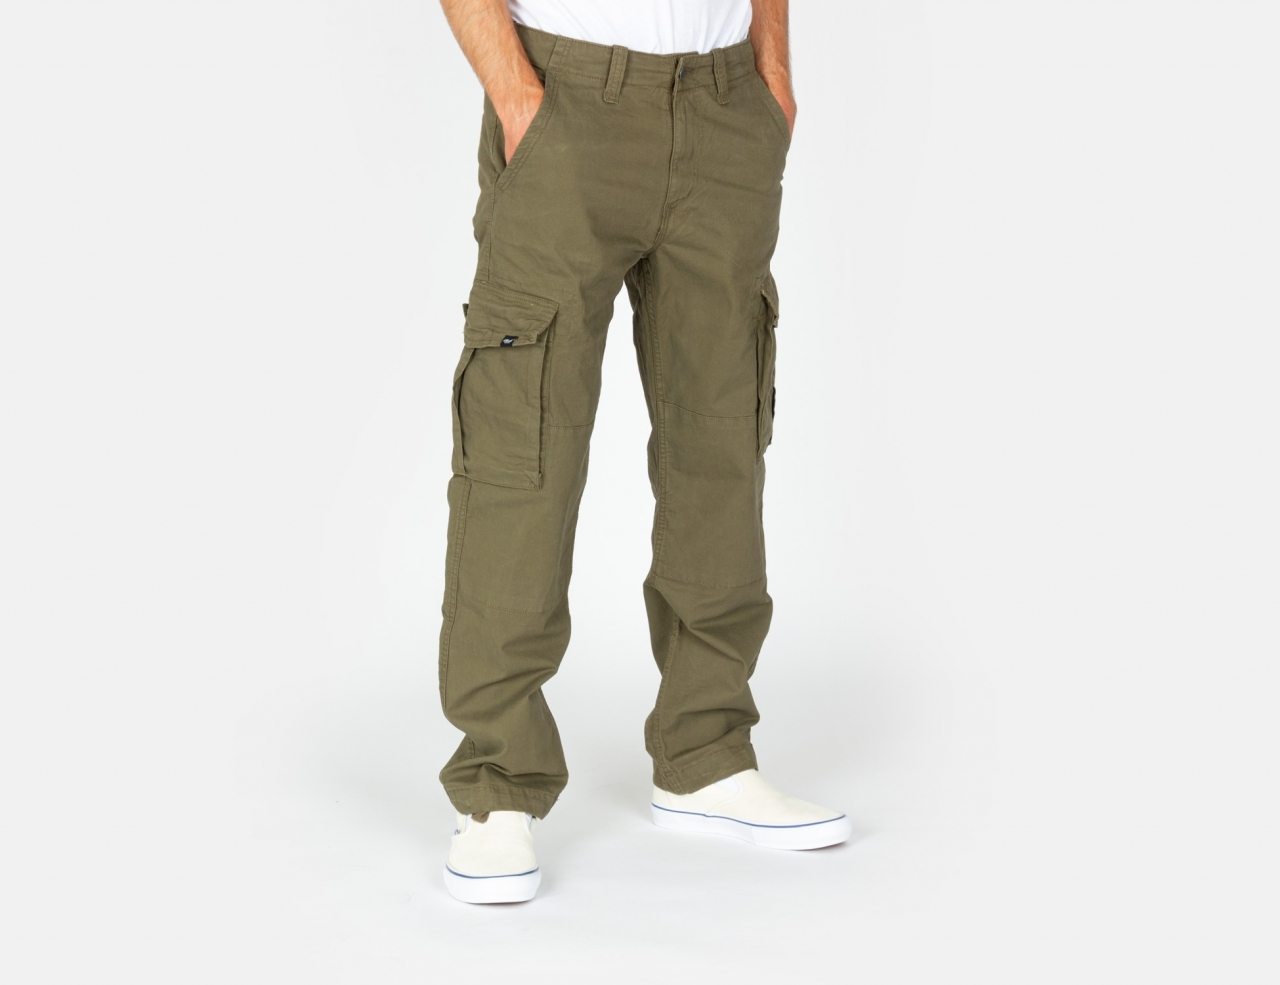 Reell Jeans Flex LC Cargo Pant - Clay Olive